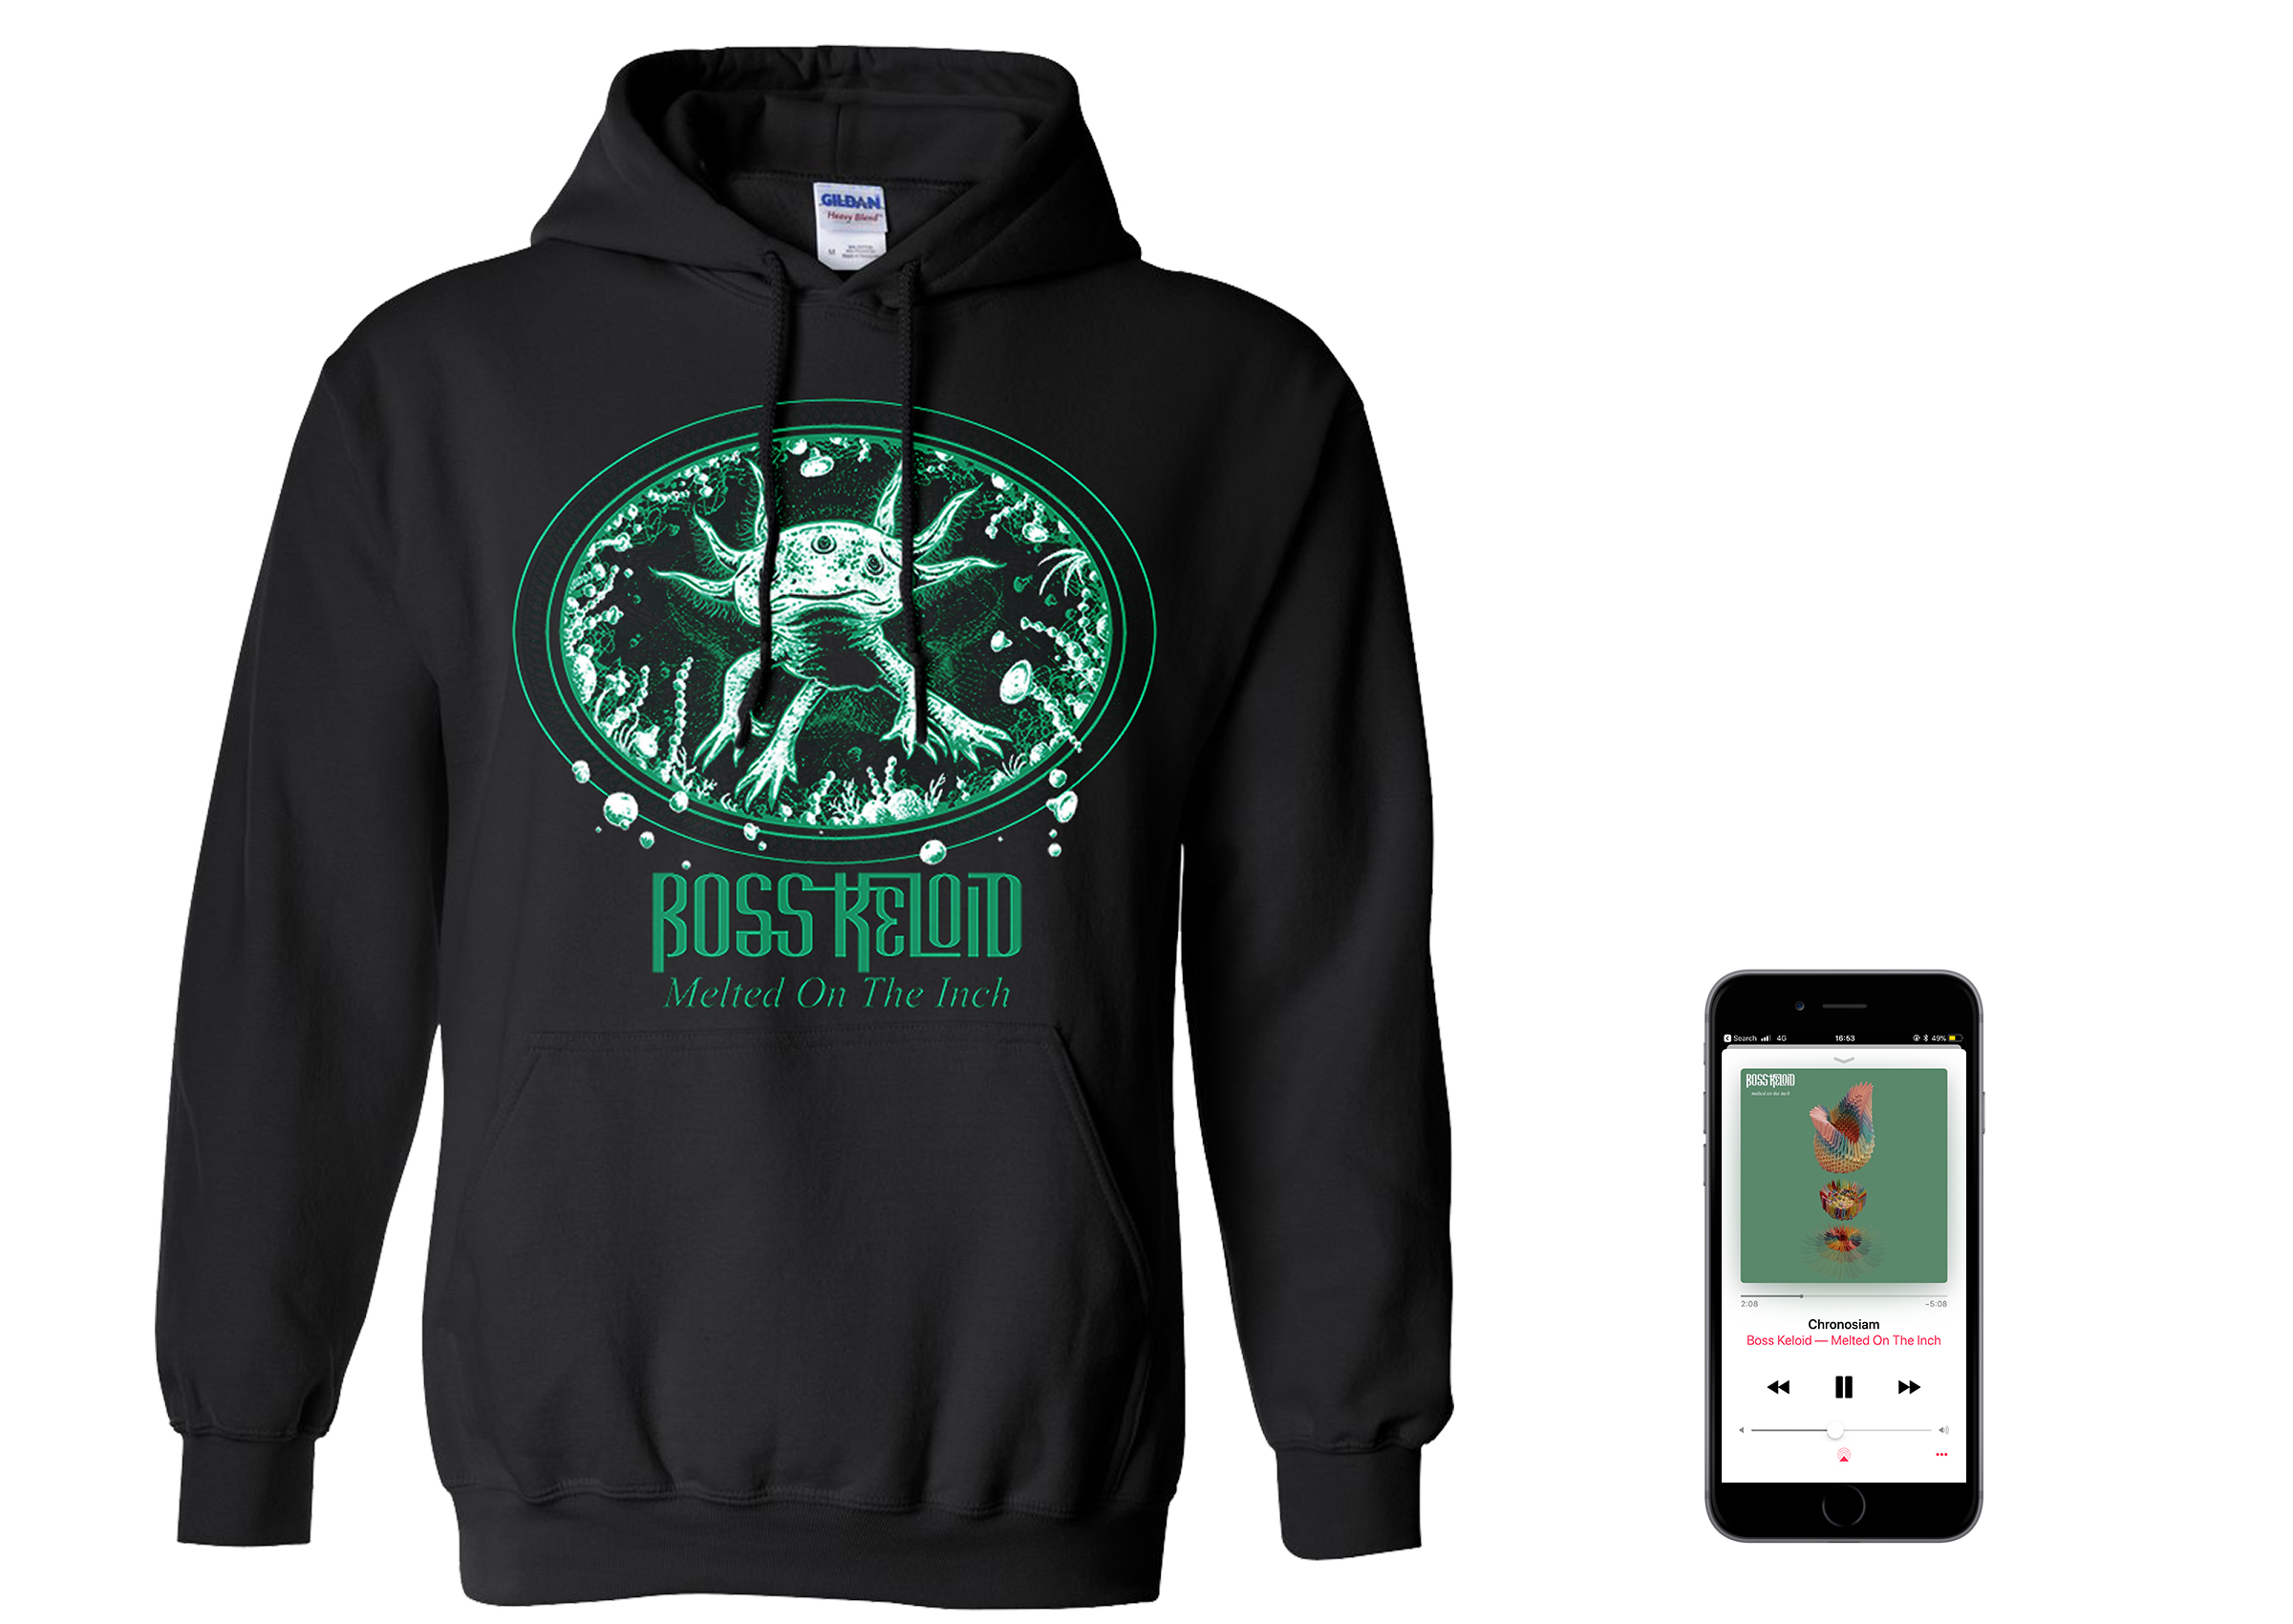 Boss Keloid 'Melted...' Axolotl hoodie + digital download